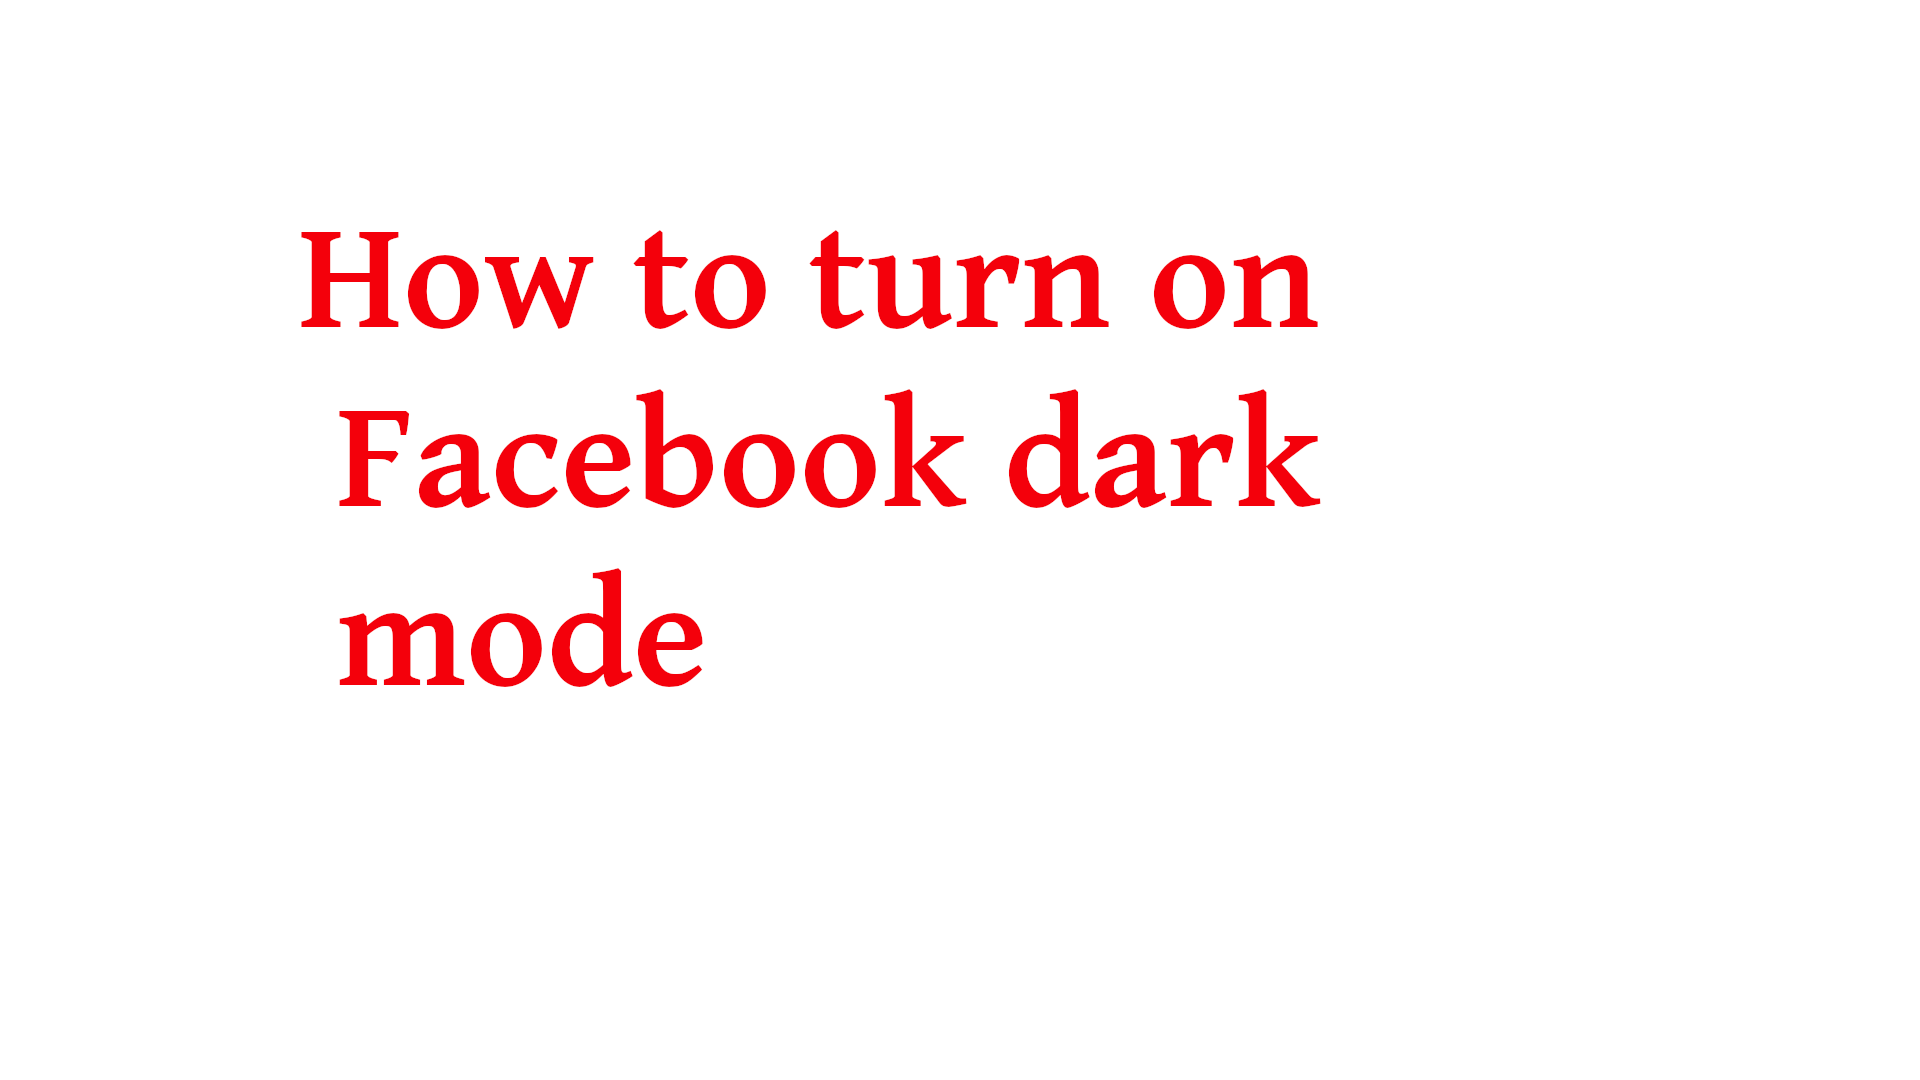 How to turn on Facebook dark mode 2020